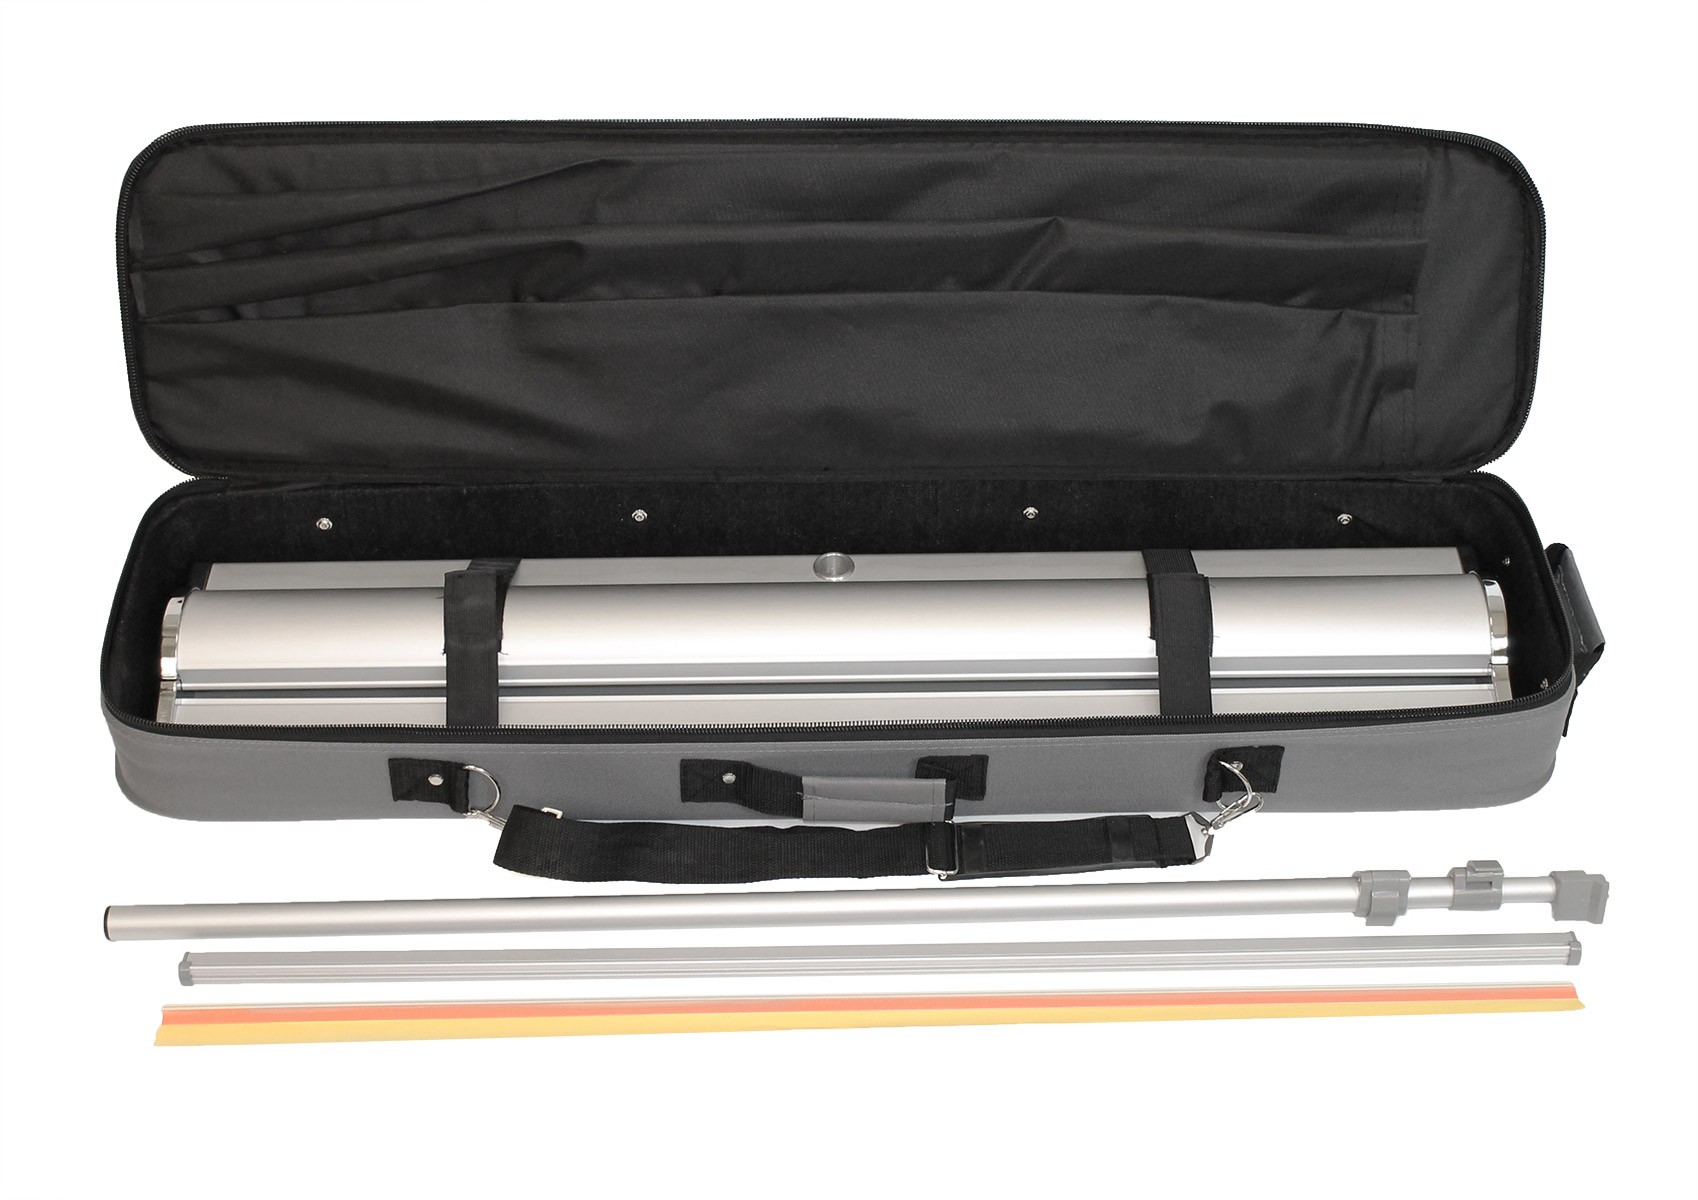 Sterling roll up banner stand in travel bag